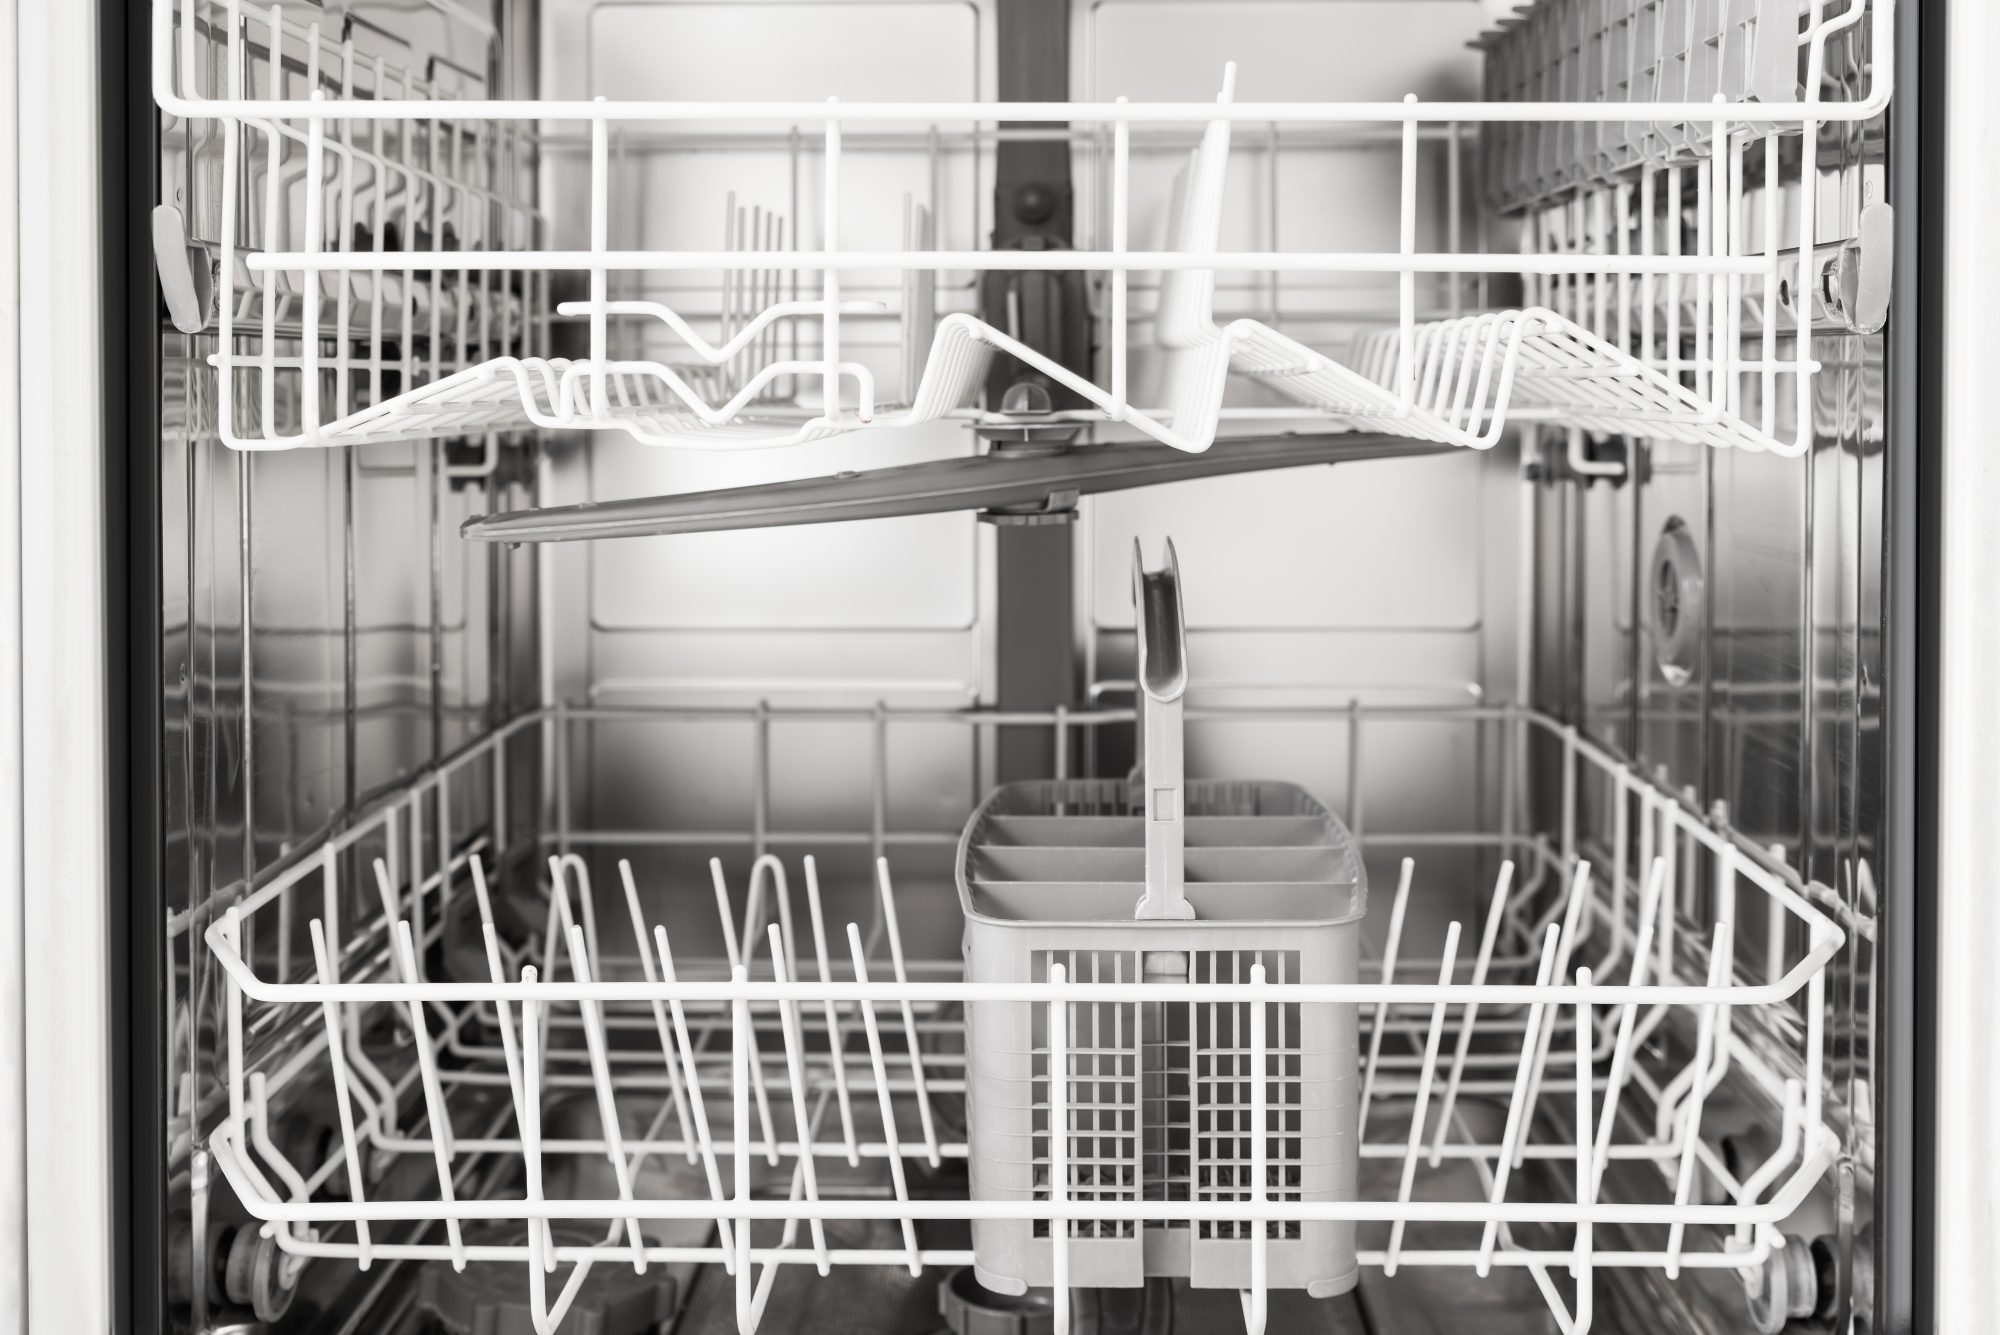 Why You Should Put A Bowl of Vinegar In Your Dishwasher